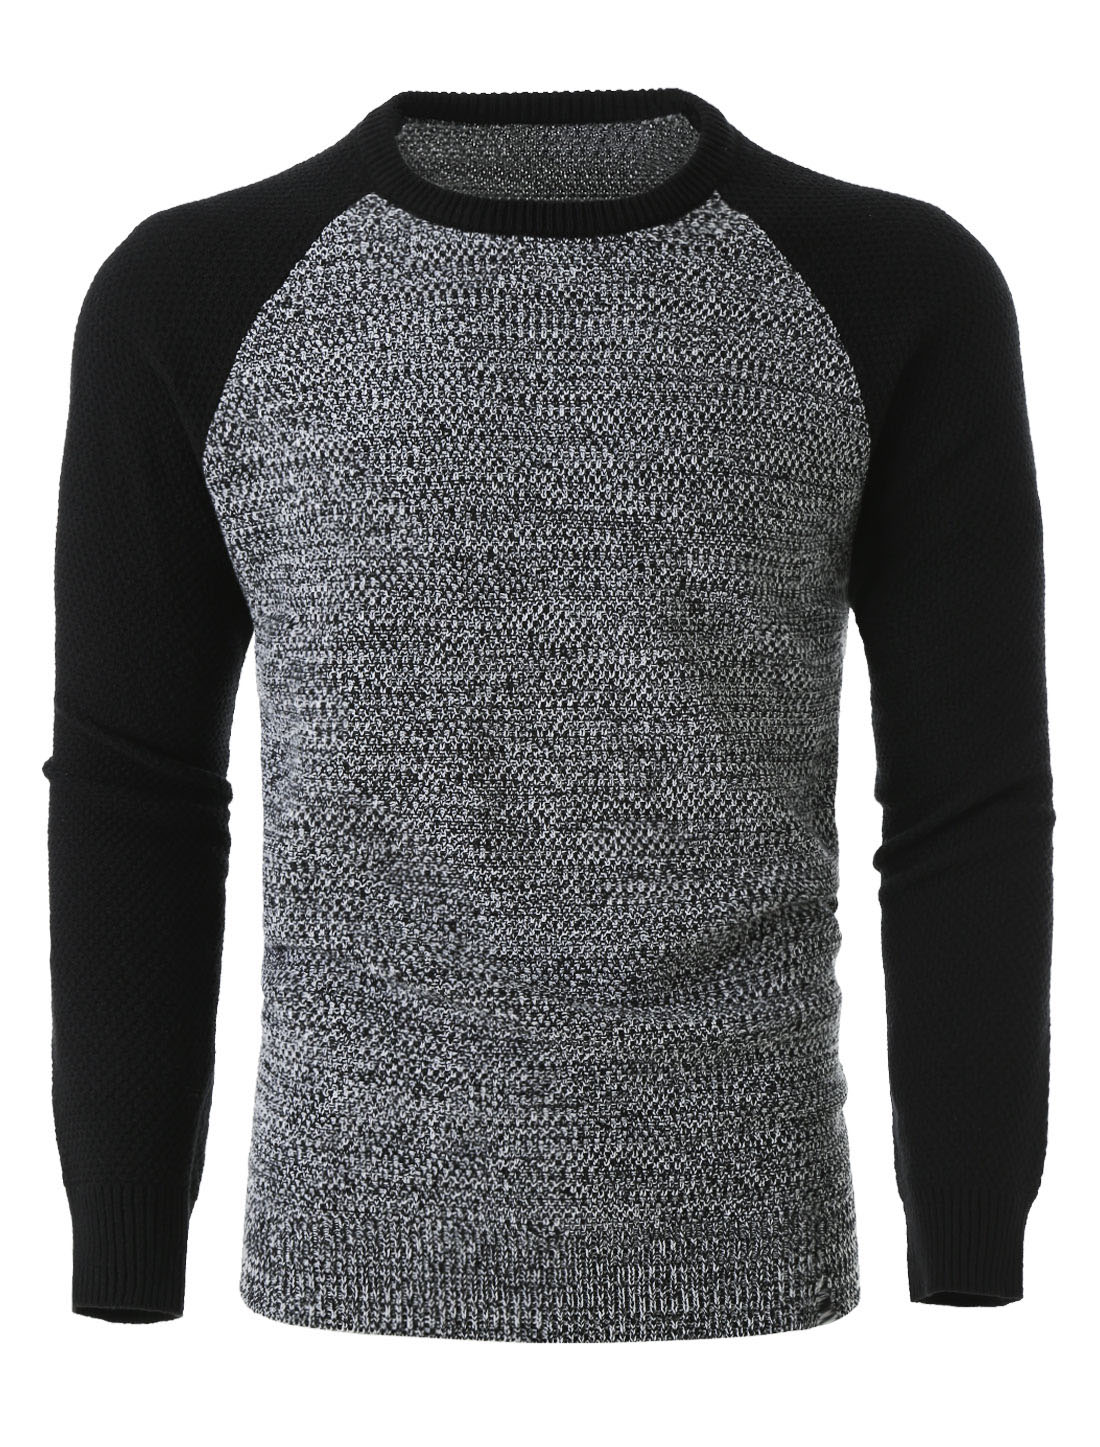 Men Colorblock Lightweight Long Sleeve Crewneck Pullover Knit Sweater Grey S